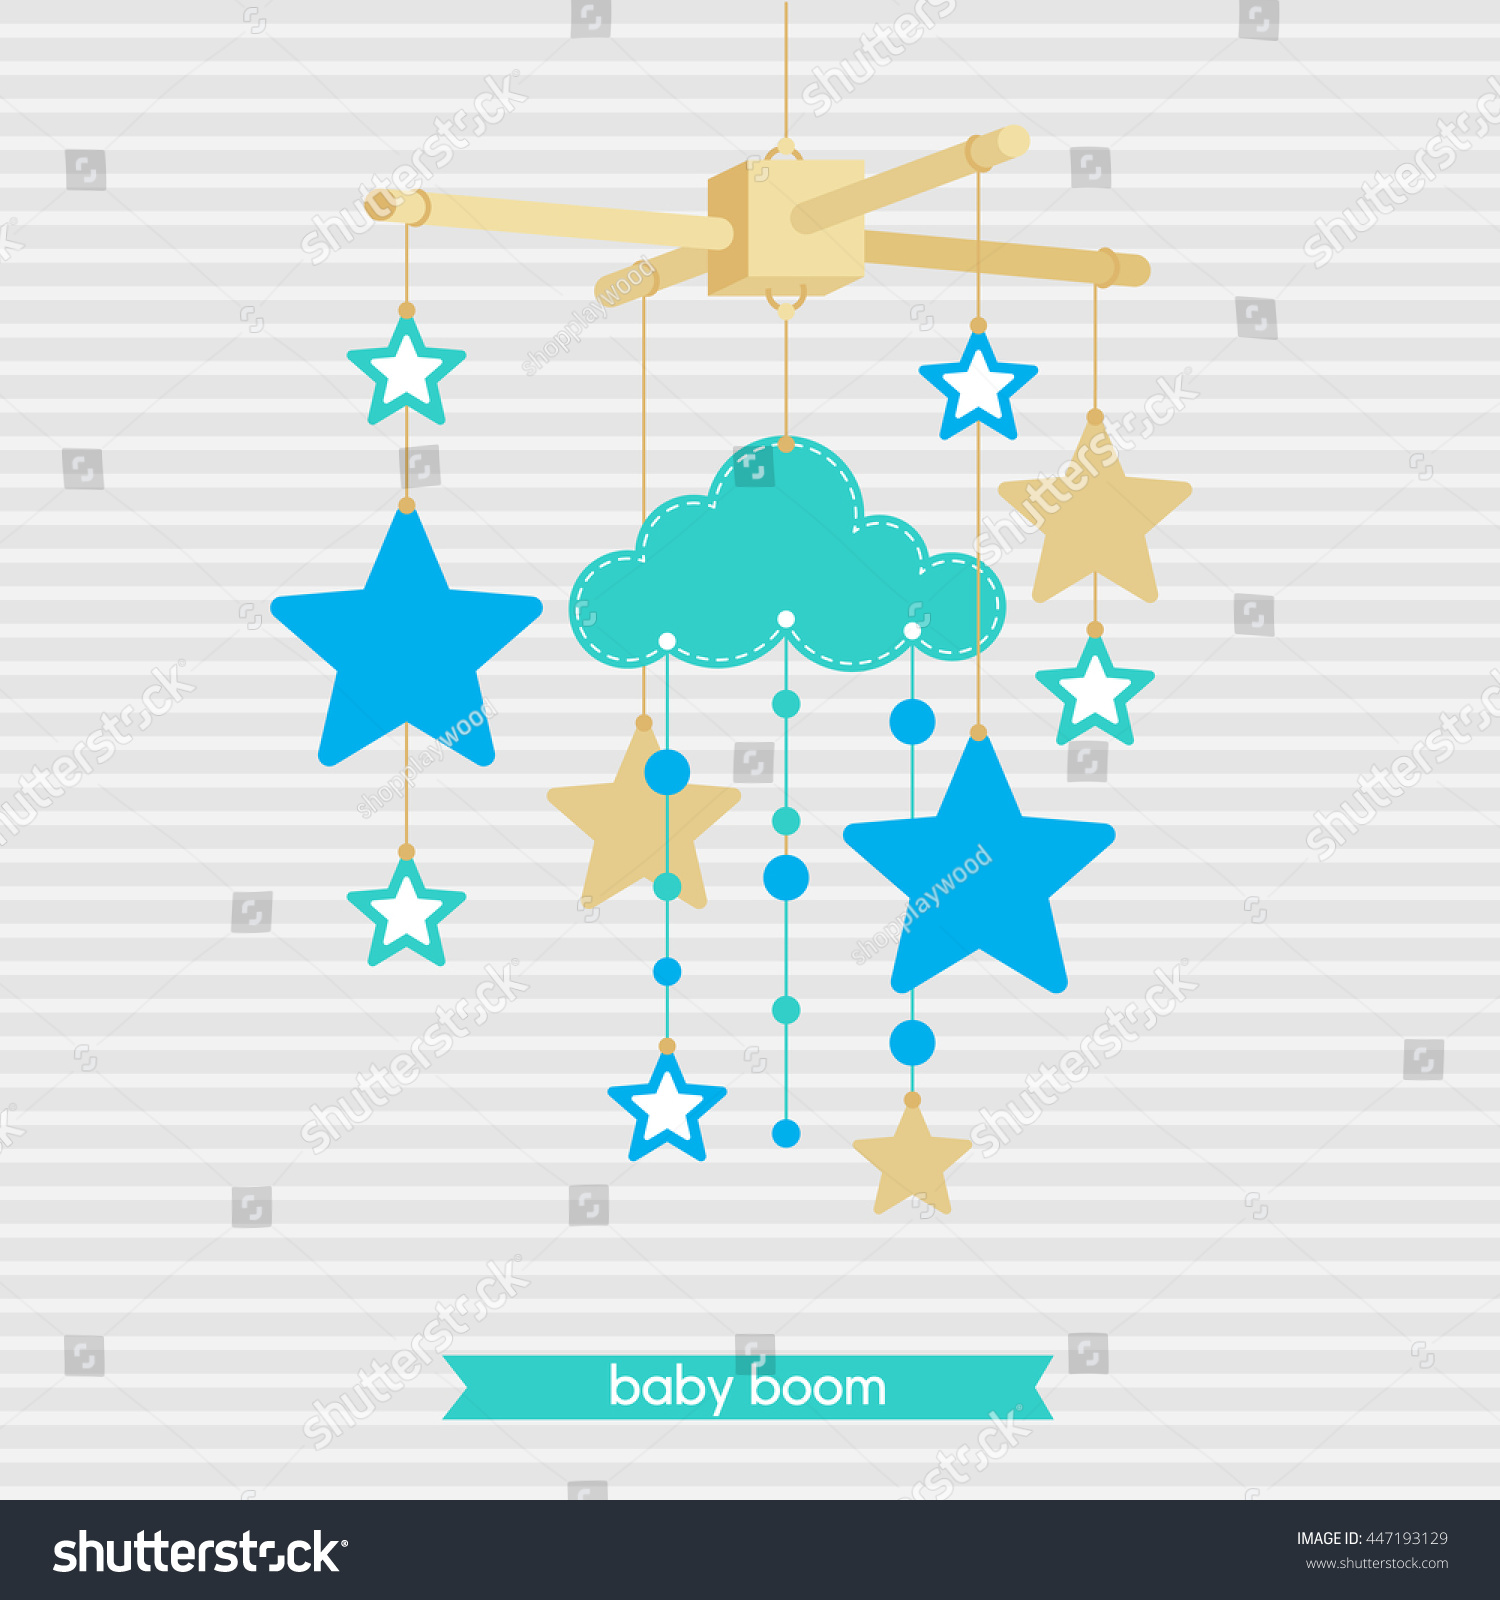 Baby Shower Invitation Template Adorable Illustration Stock Vector ...